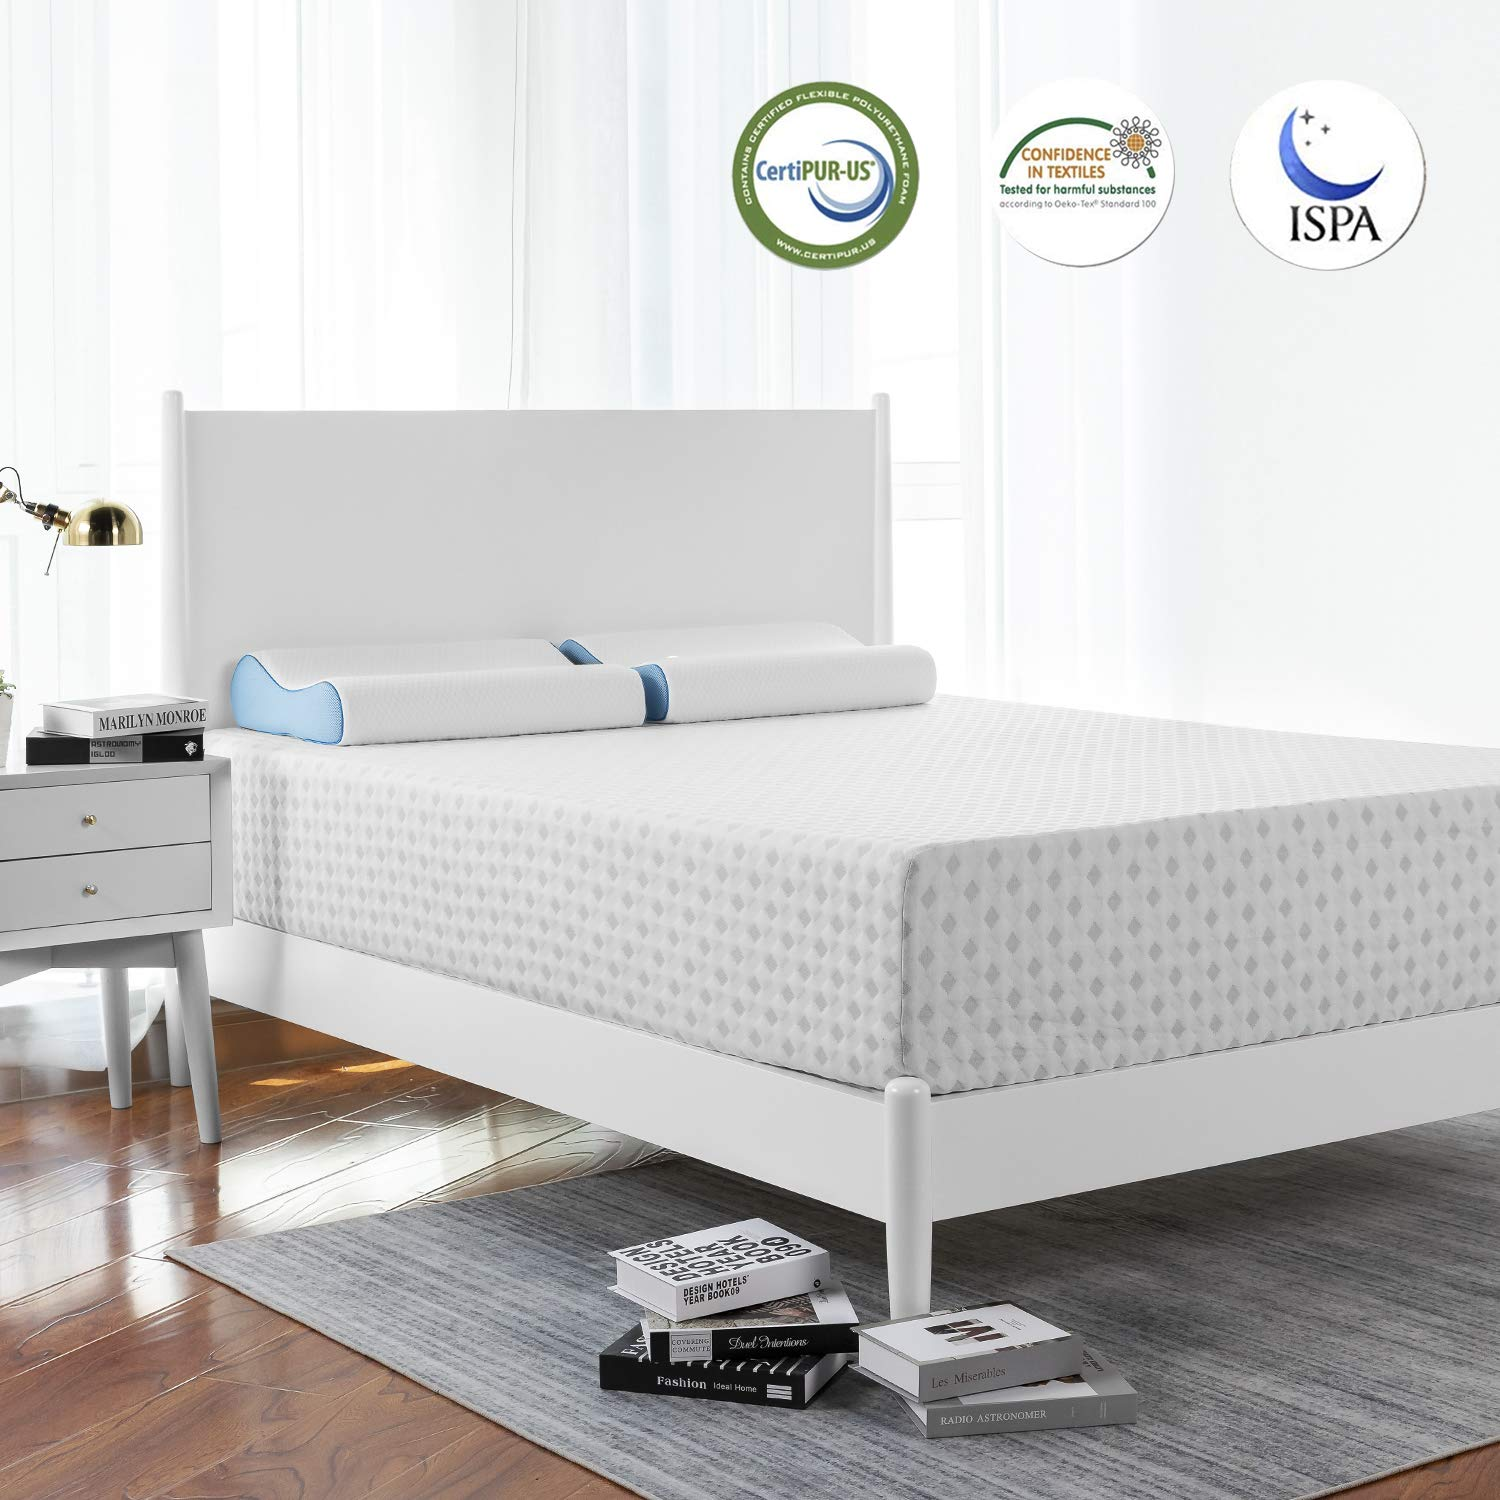 Medium Firm Mattress Twin XL Drom RUUF Twin Extra Long Adjustable Bed Base with 10 Inch Creative Foam Mattress Adjustable Bed Frame with Independent Head and Foot Incline Control by Wireless Remote